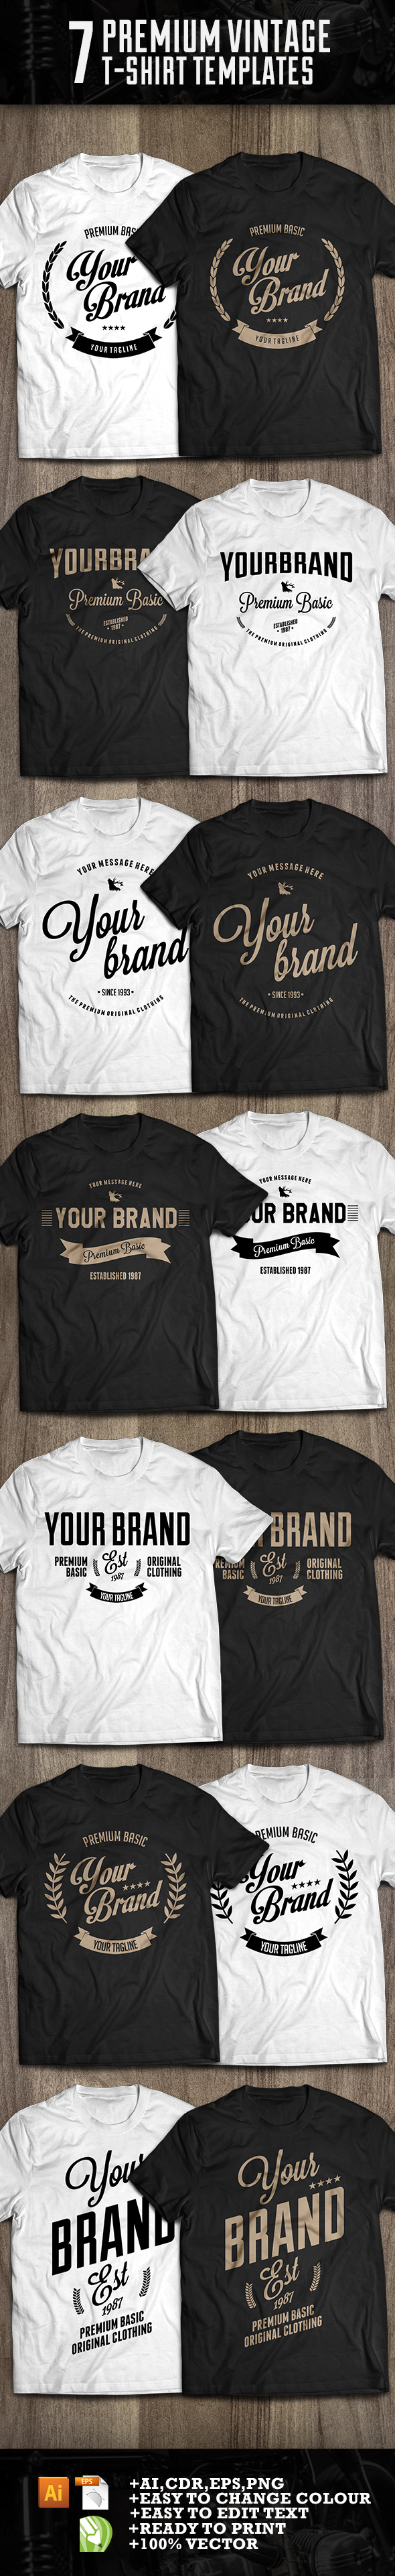 Download 7 Premium T Shirt Template By Lazy Bones Via Behance Shirt Template T Shirt Design Template T Shirt Painting